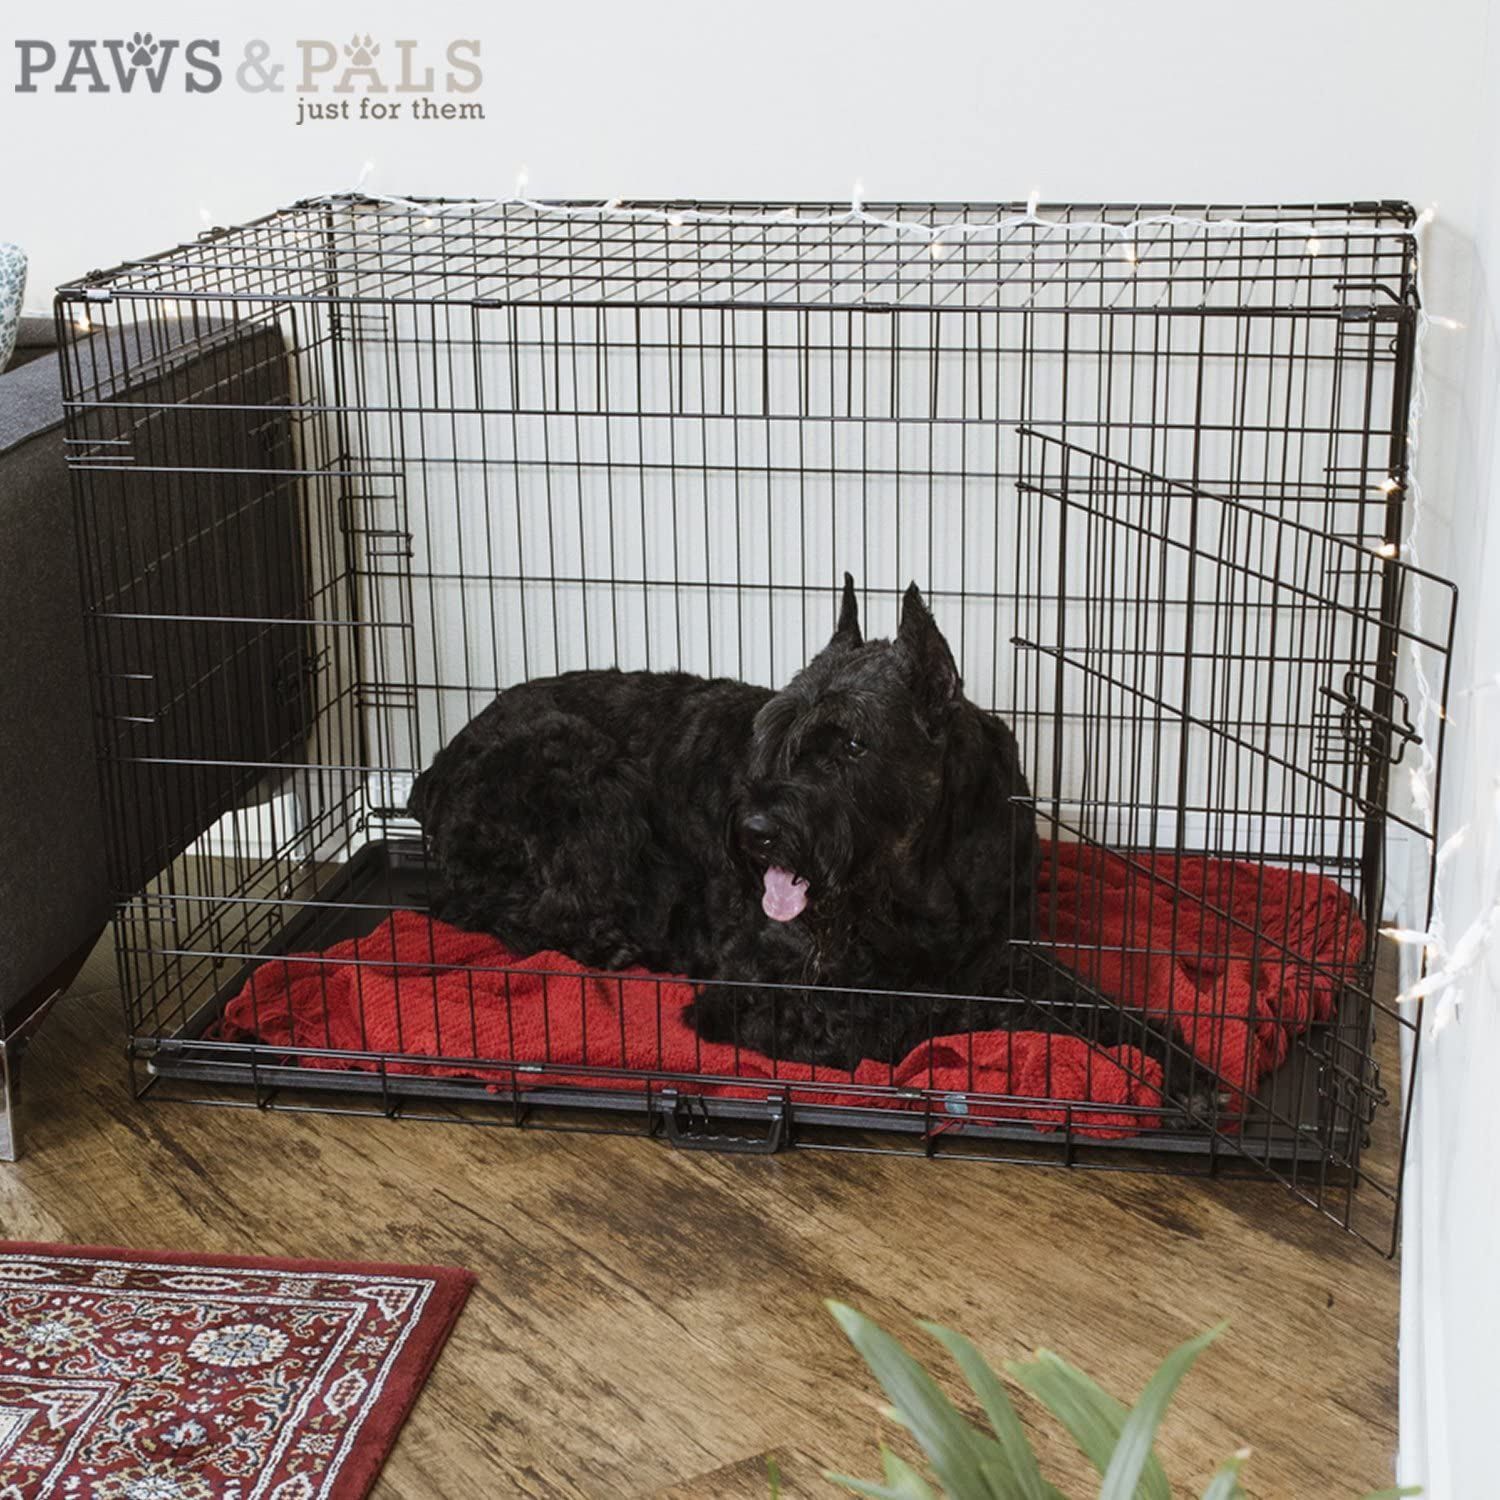 2020 Newly Designed Model Wire Pet Cage w//Divider /& Tray for Training Pet Supplies /& Accessories Paws /& Pals Dog Crate Double-Door Folding Metal